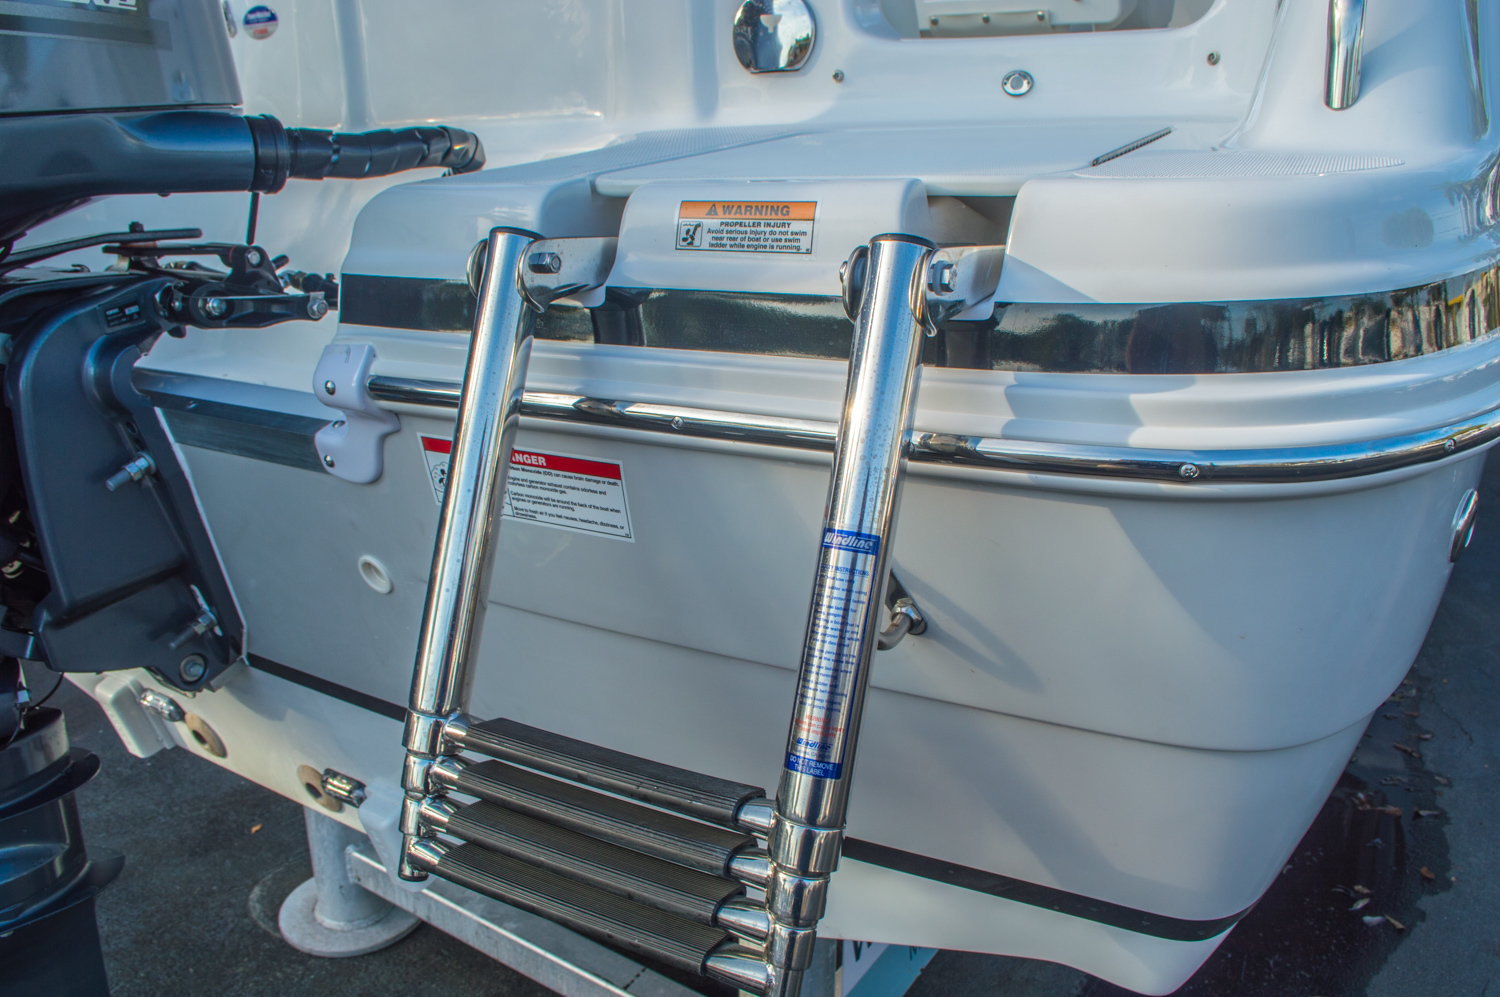 Thumbnail 9 for New 2016 Hurricane CC211 Center Consle boat for sale in West Palm Beach, FL